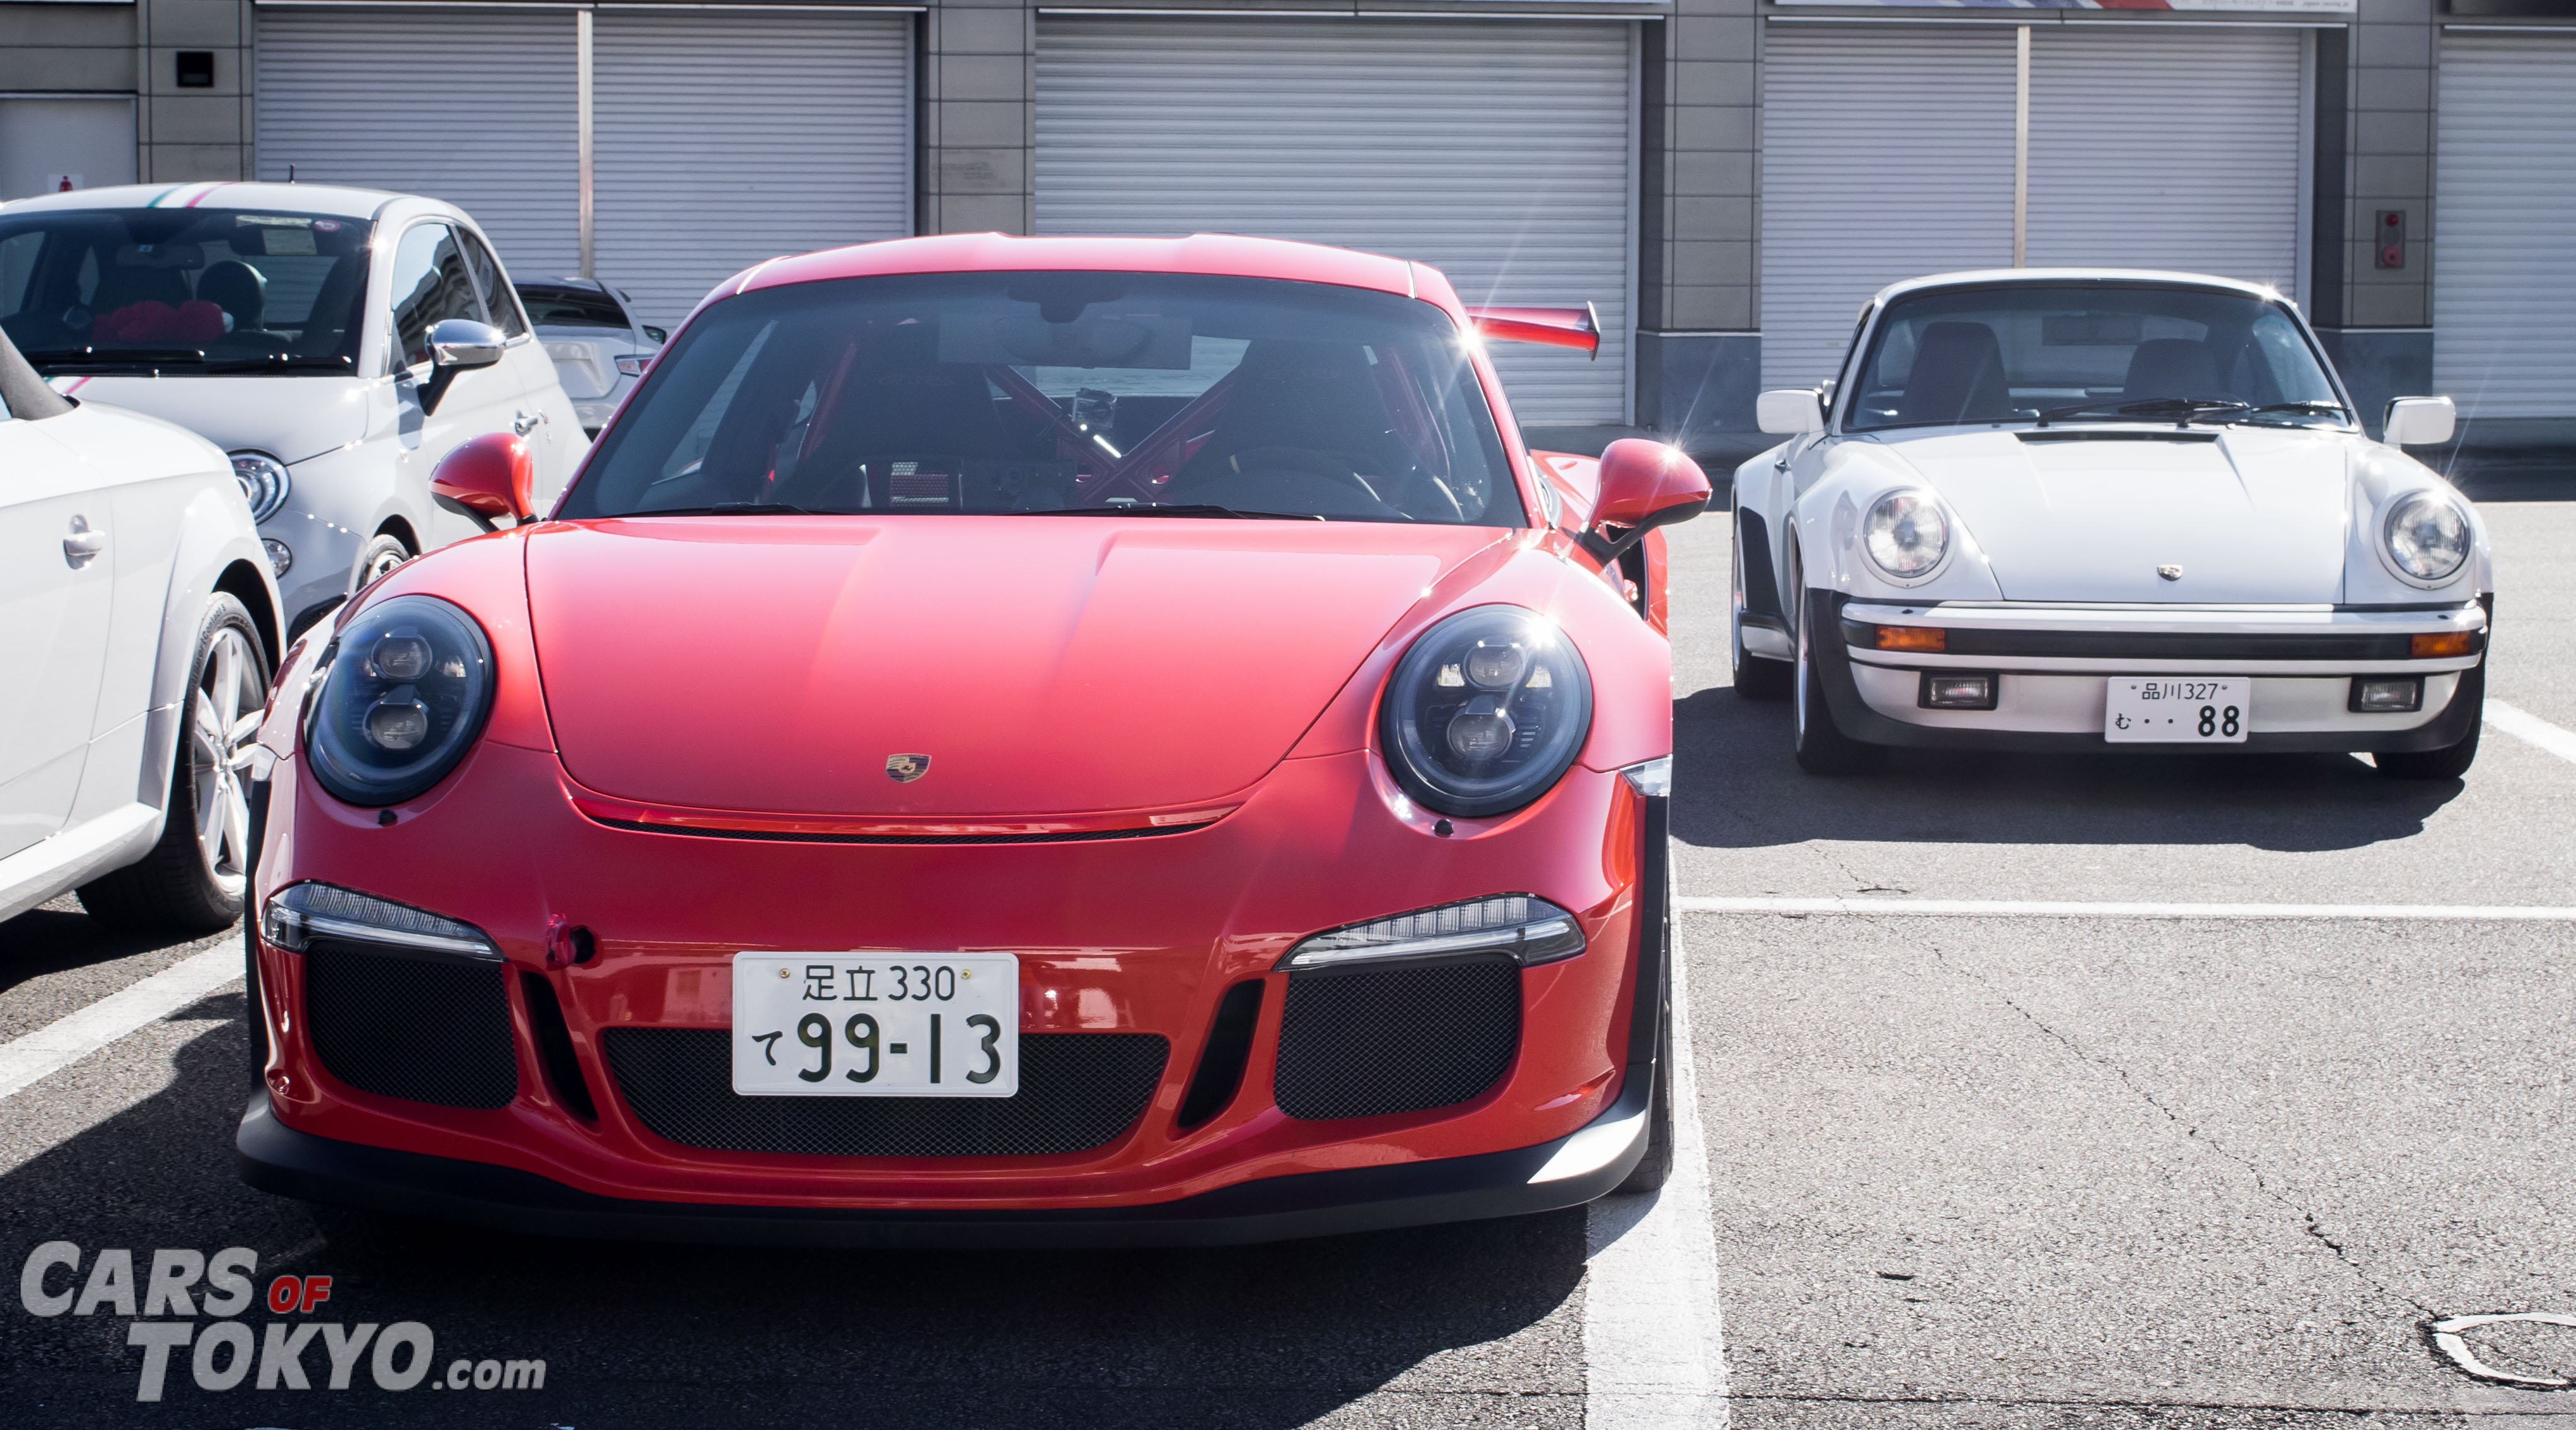 Cars of Tokyo Porsche 911 GT3 RS & 930 Turbo